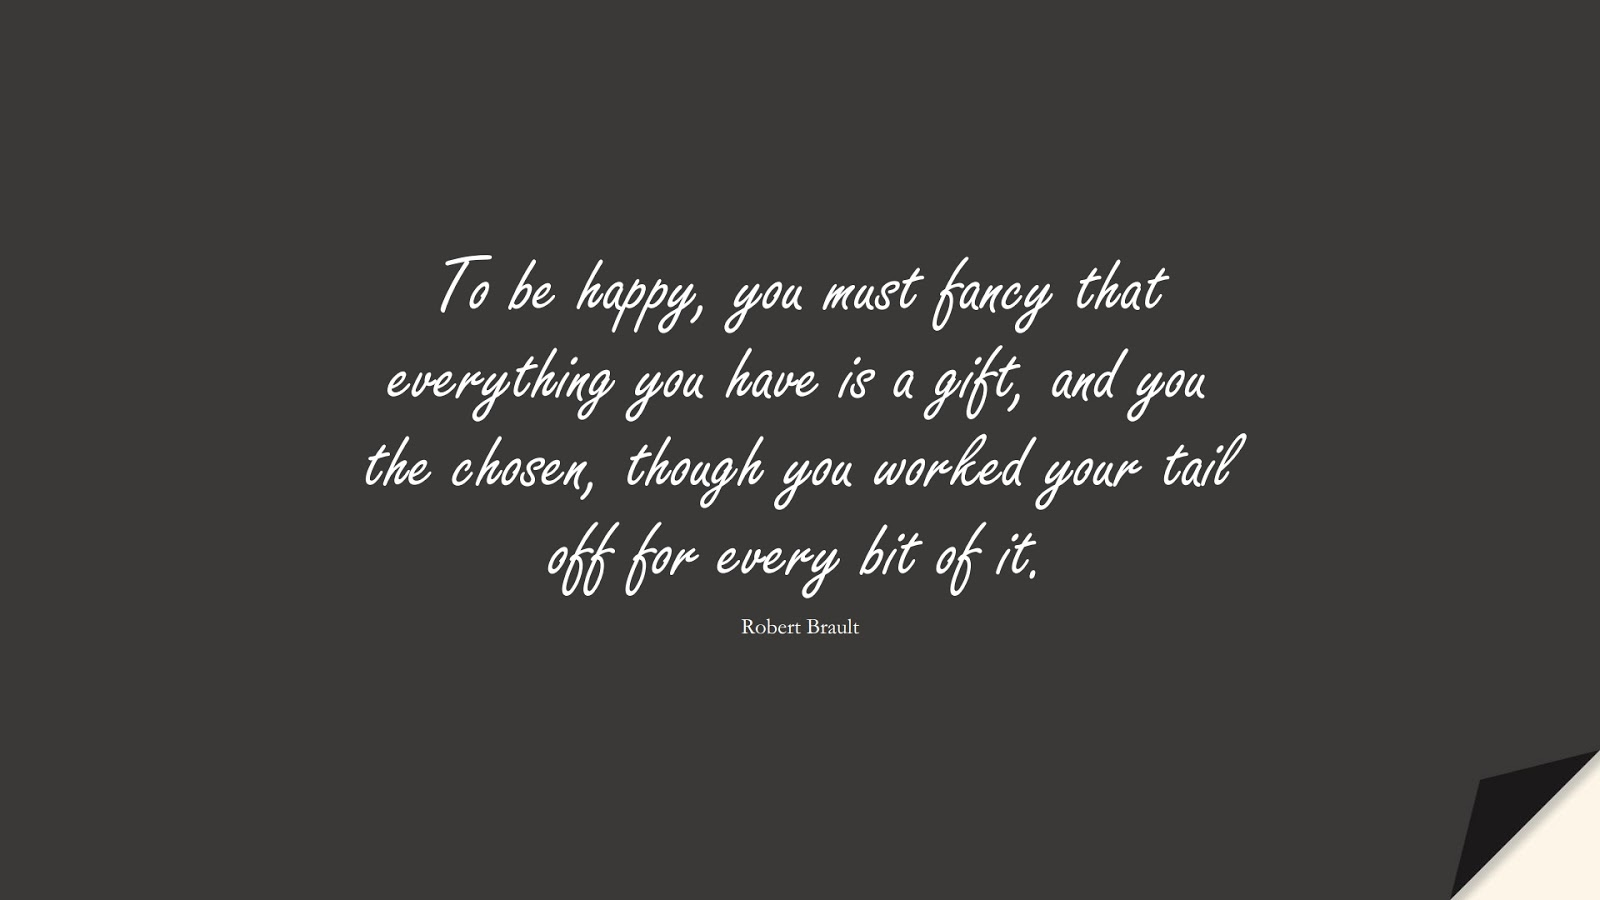 To be happy, you must fancy that everything you have is a gift, and you the chosen, though you worked your tail off for every bit of it. (Robert Brault);  #HappinessQuotes